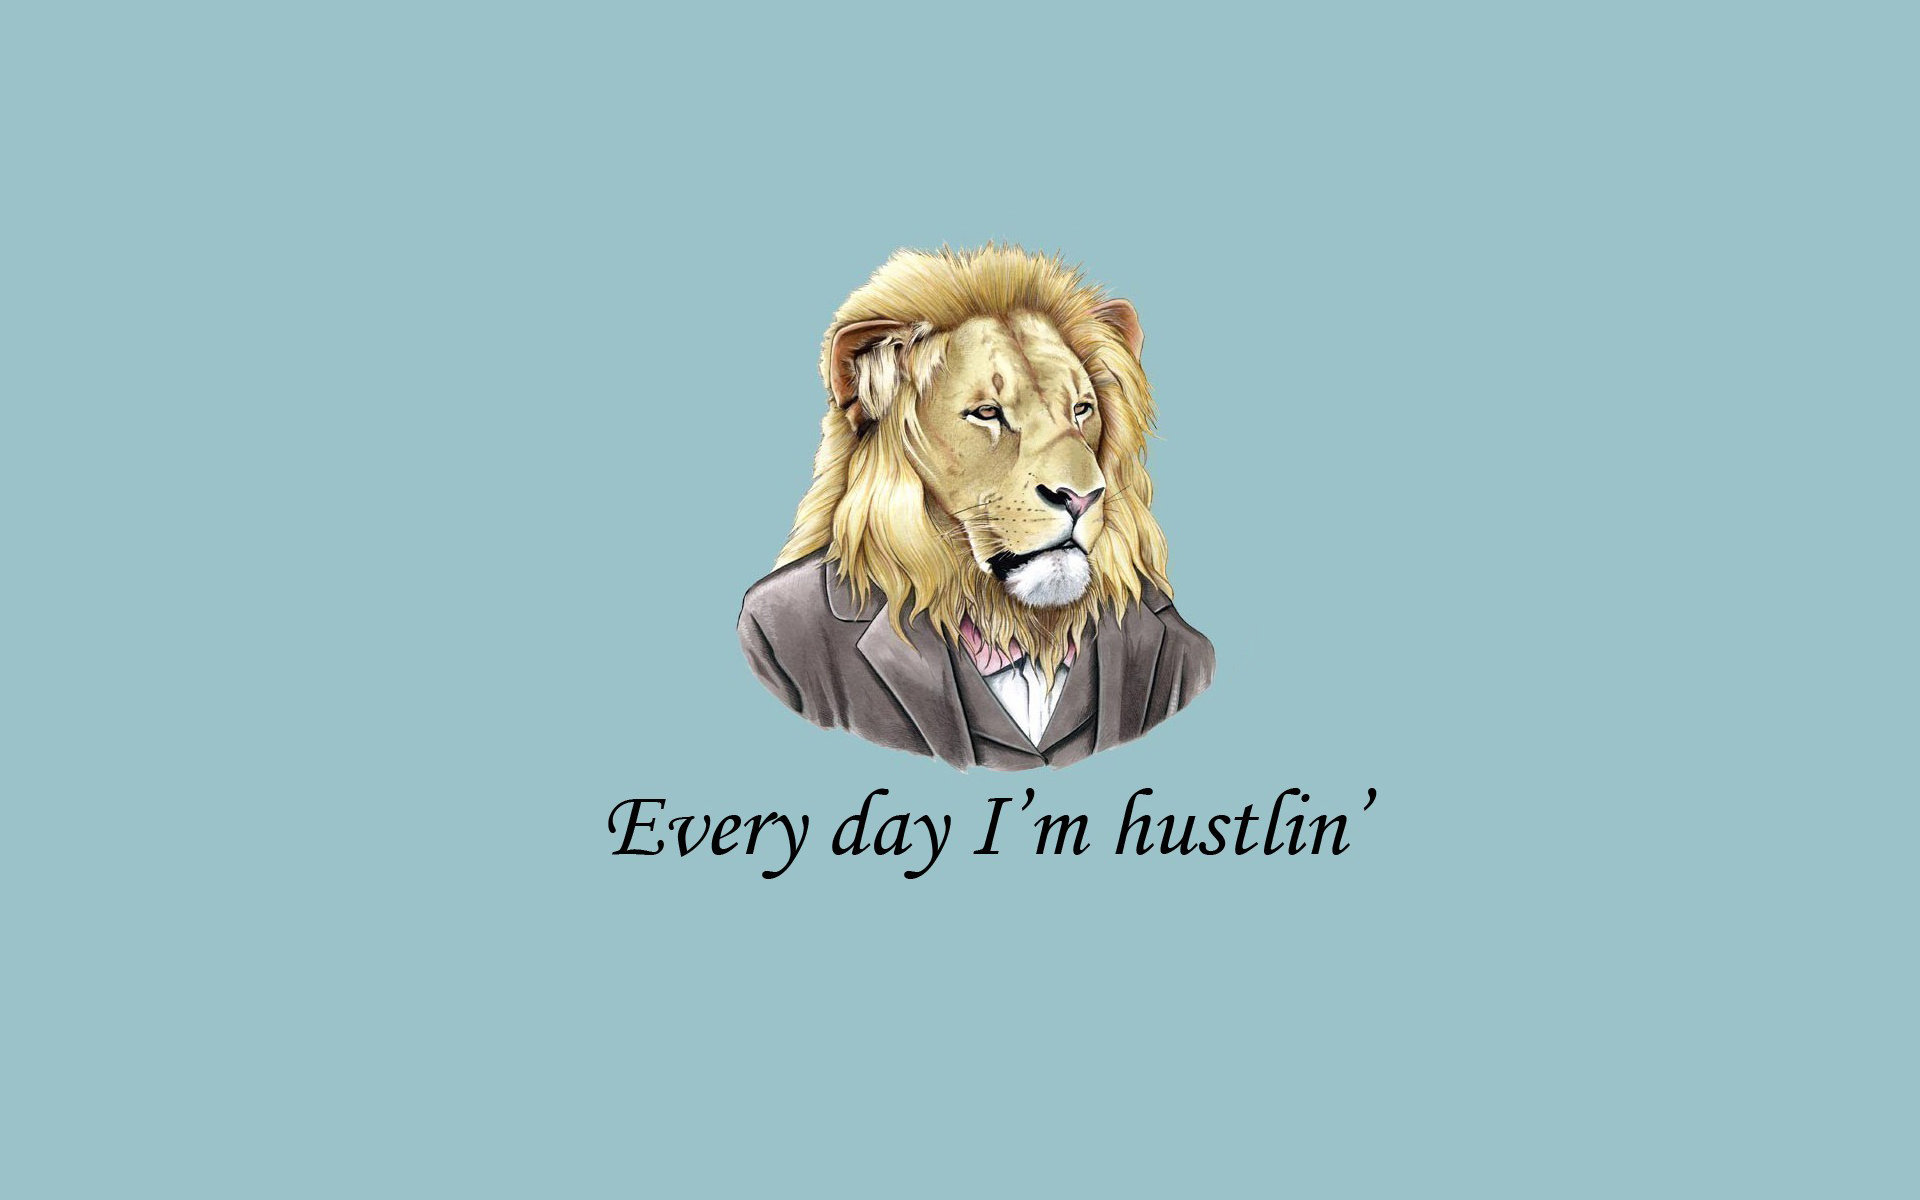 Every day im hustlin